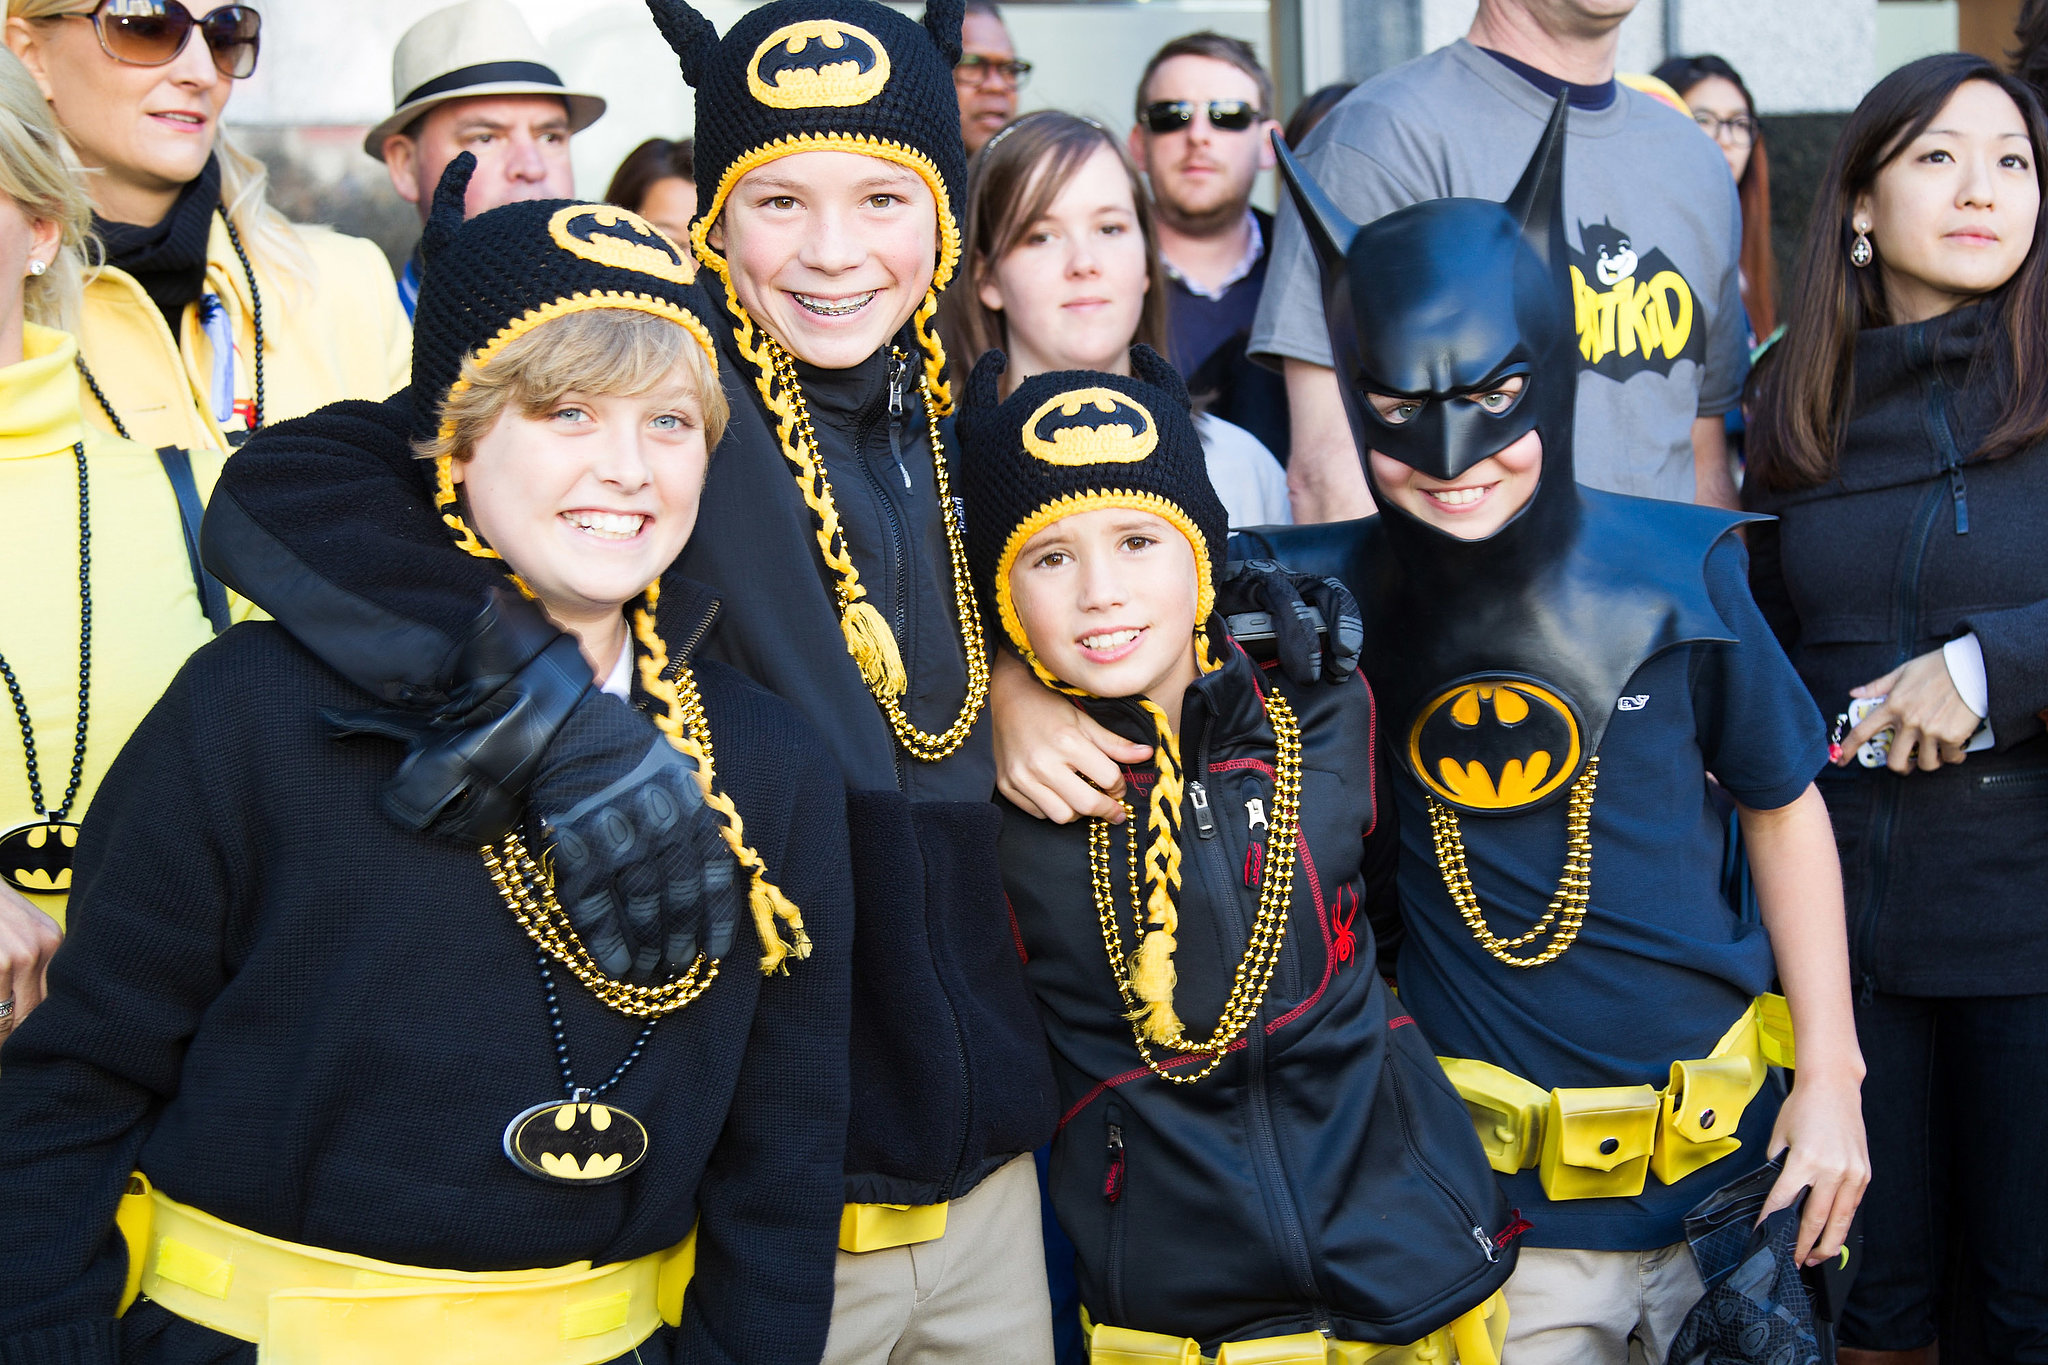 Supporters dressed up, lining the streets in Batman gear.